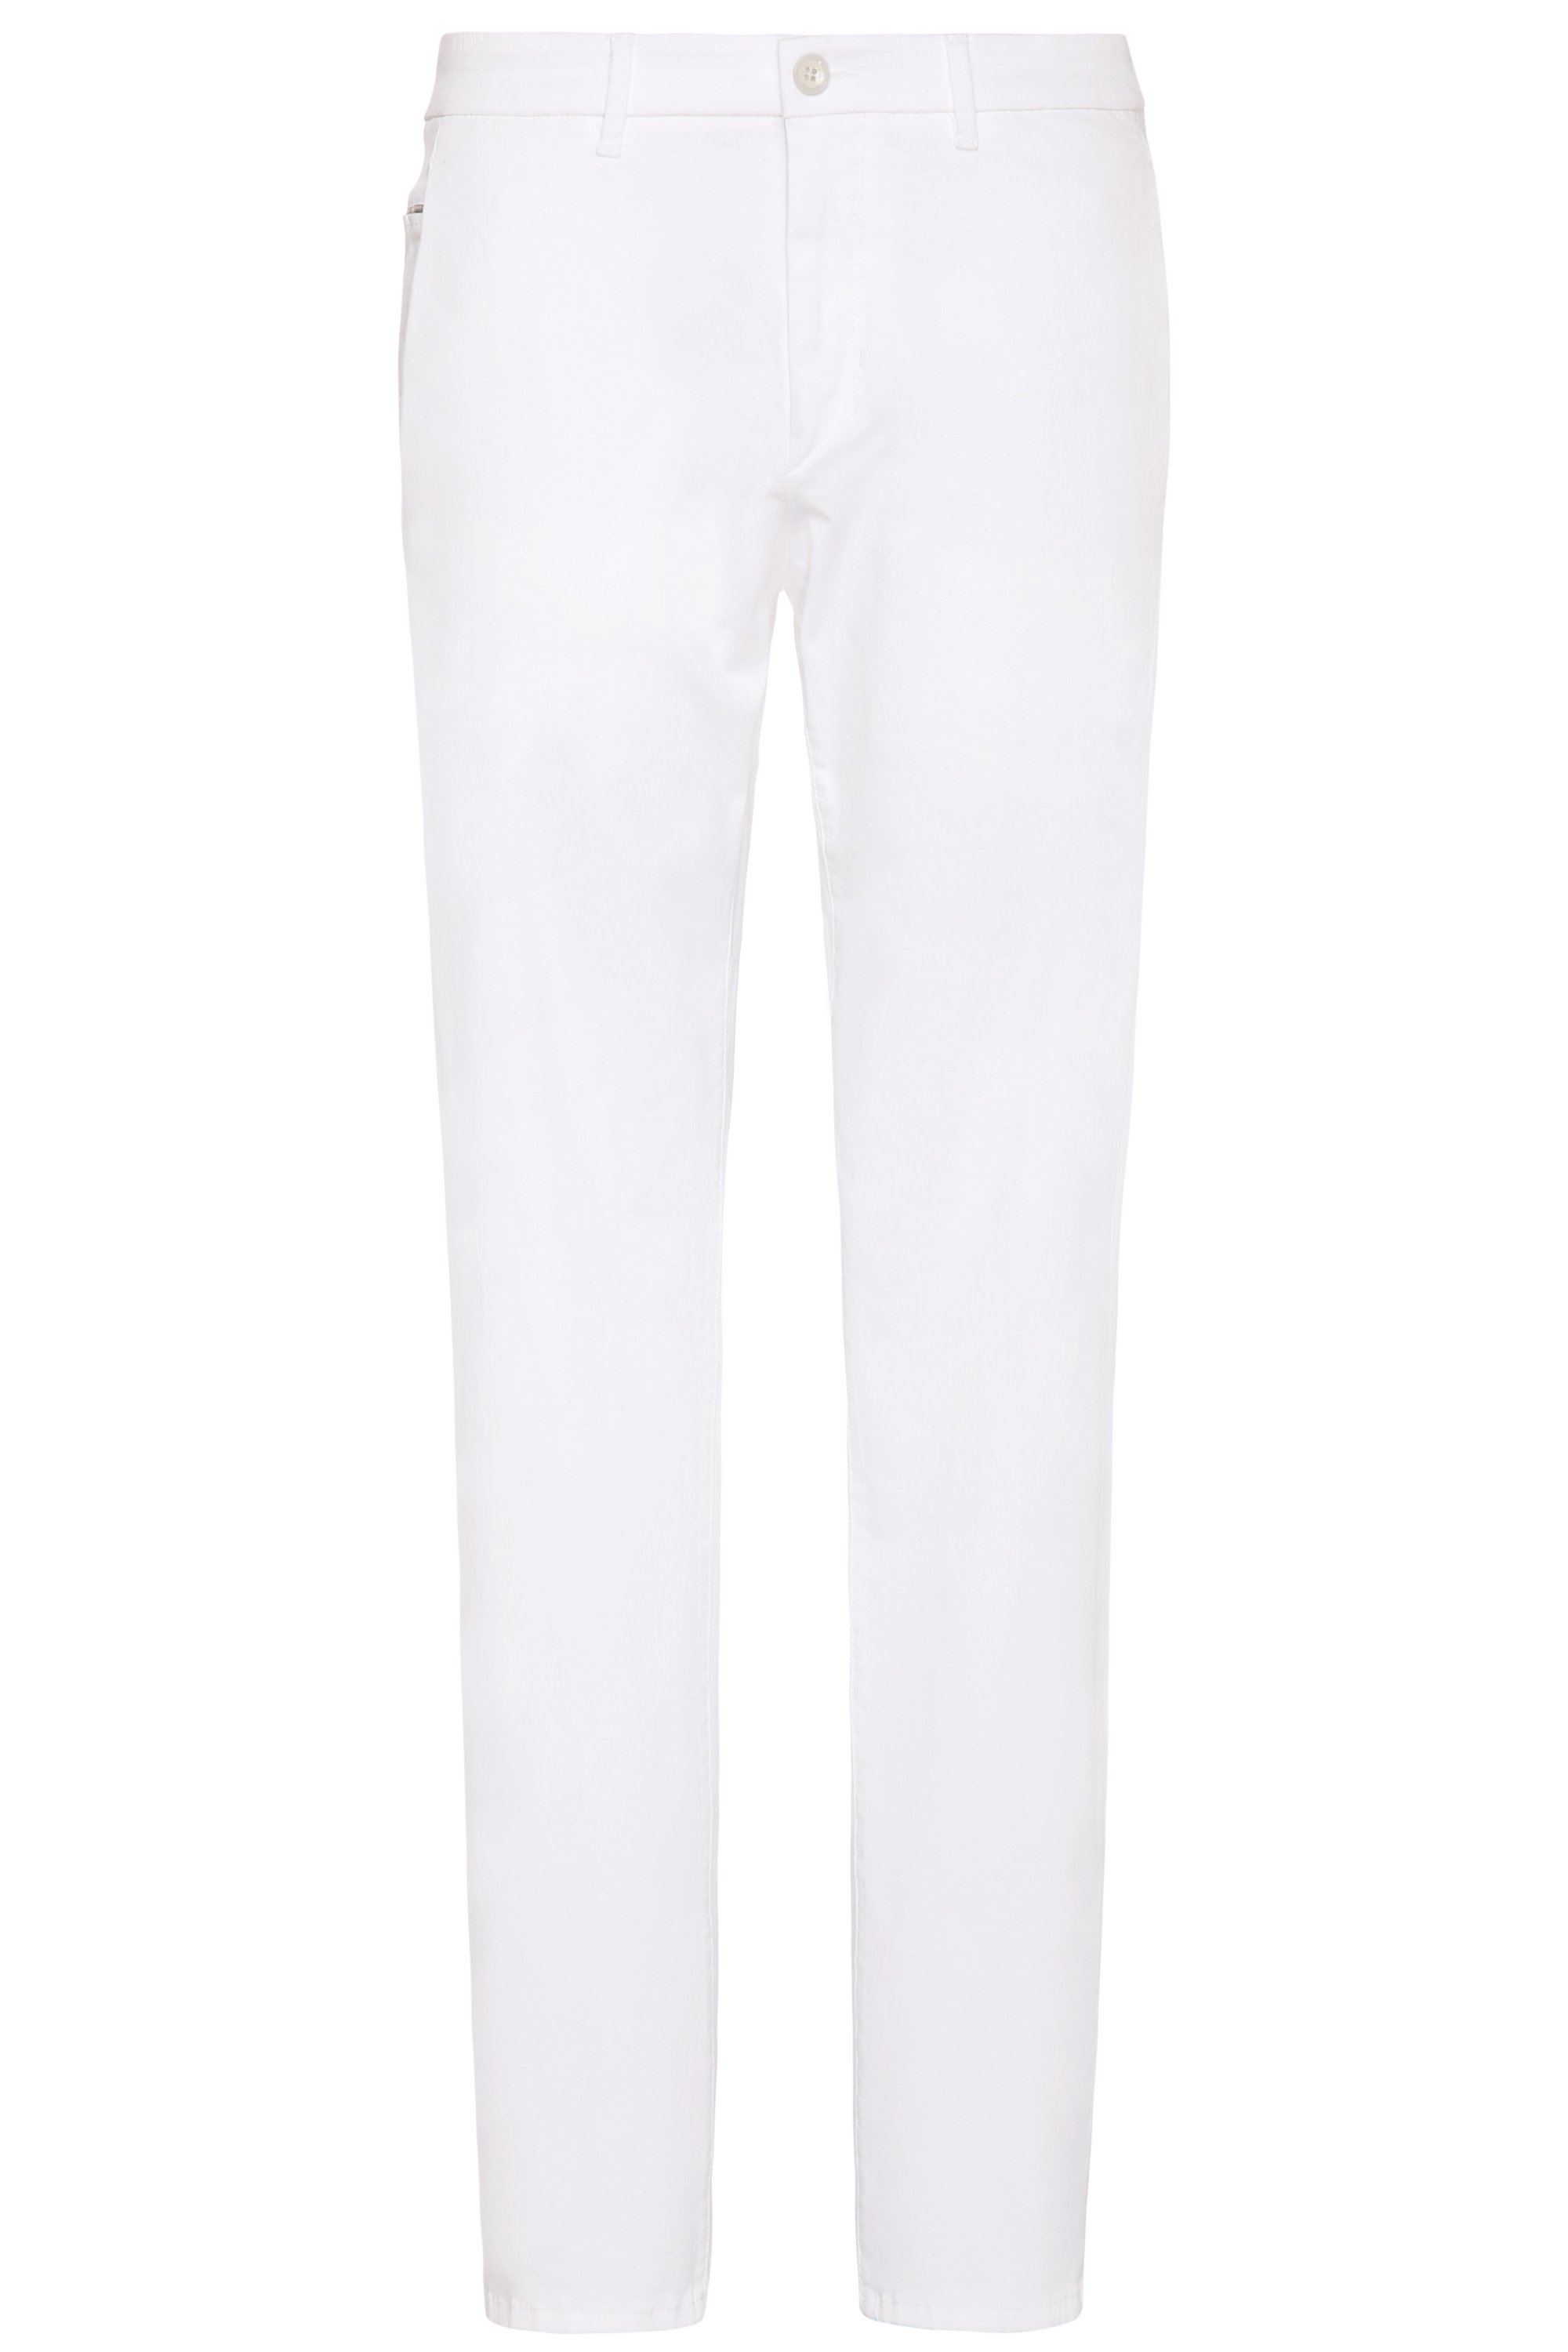 Chino Slim Fit en coton mélangé stretch à la finition satinée, Blanc